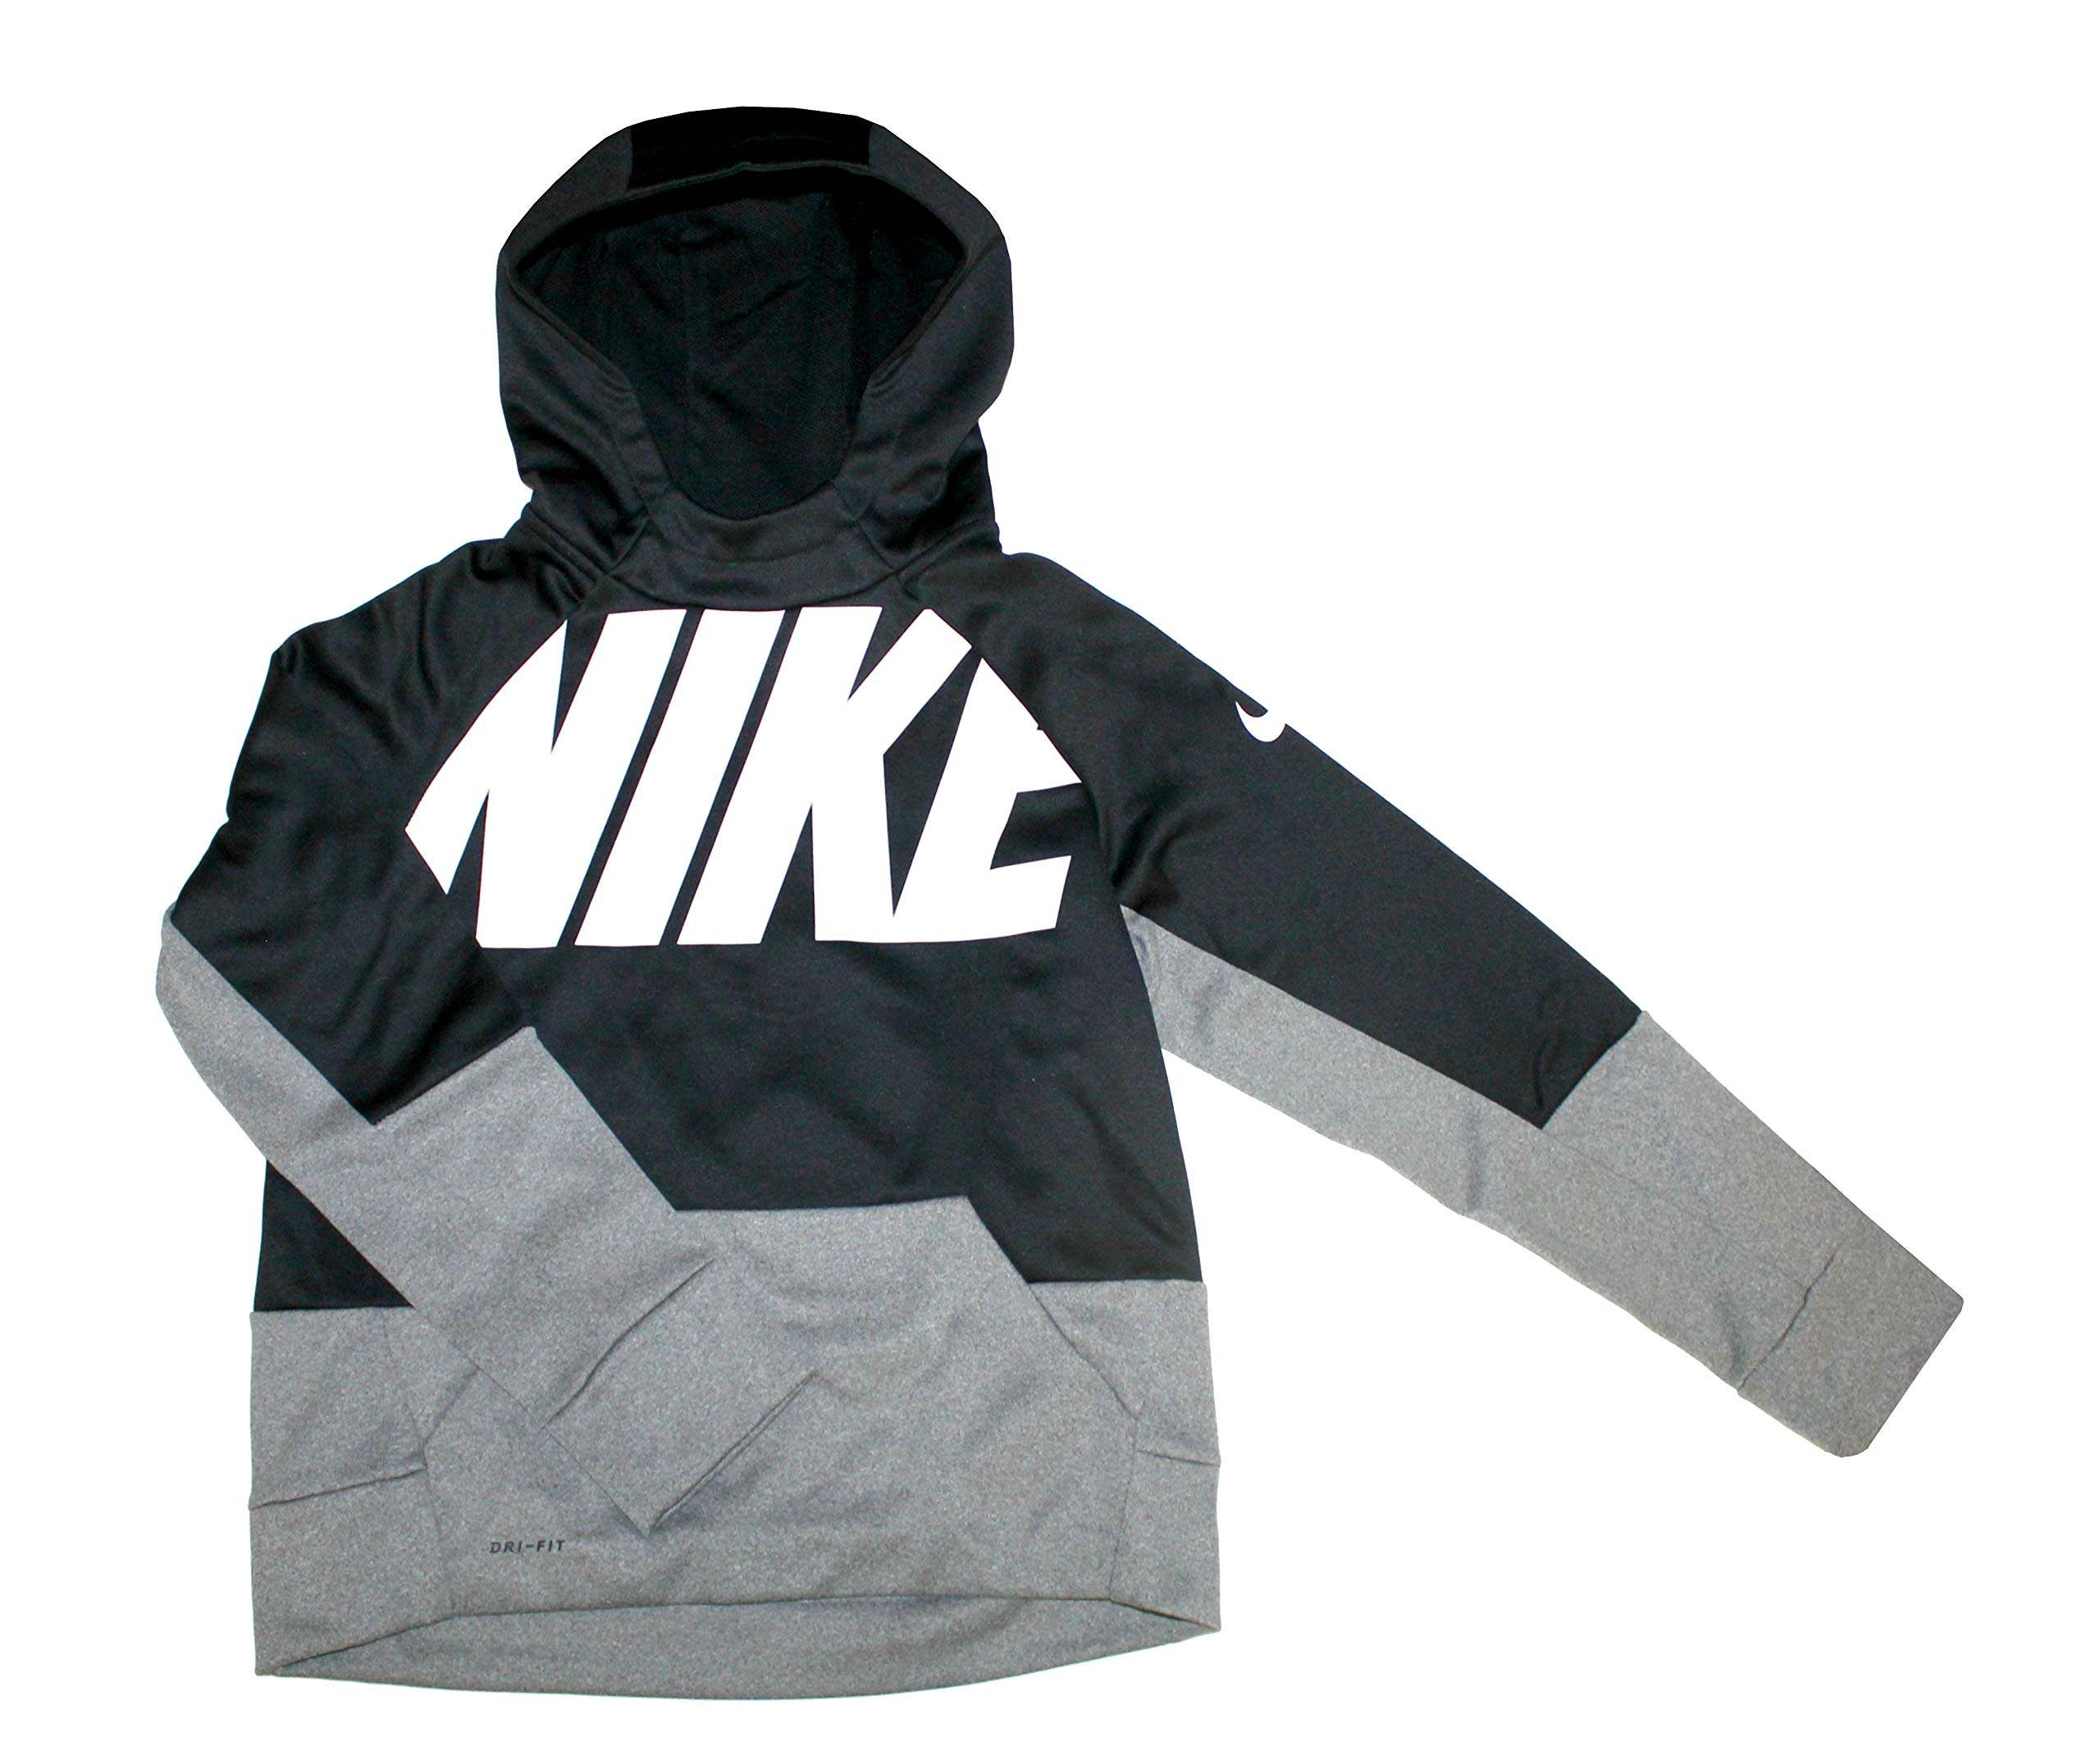 NIKE Youth Boys Therma Training Hoodie Athletic Pullover,Black/Grey White/Matte Silver,M 10/12